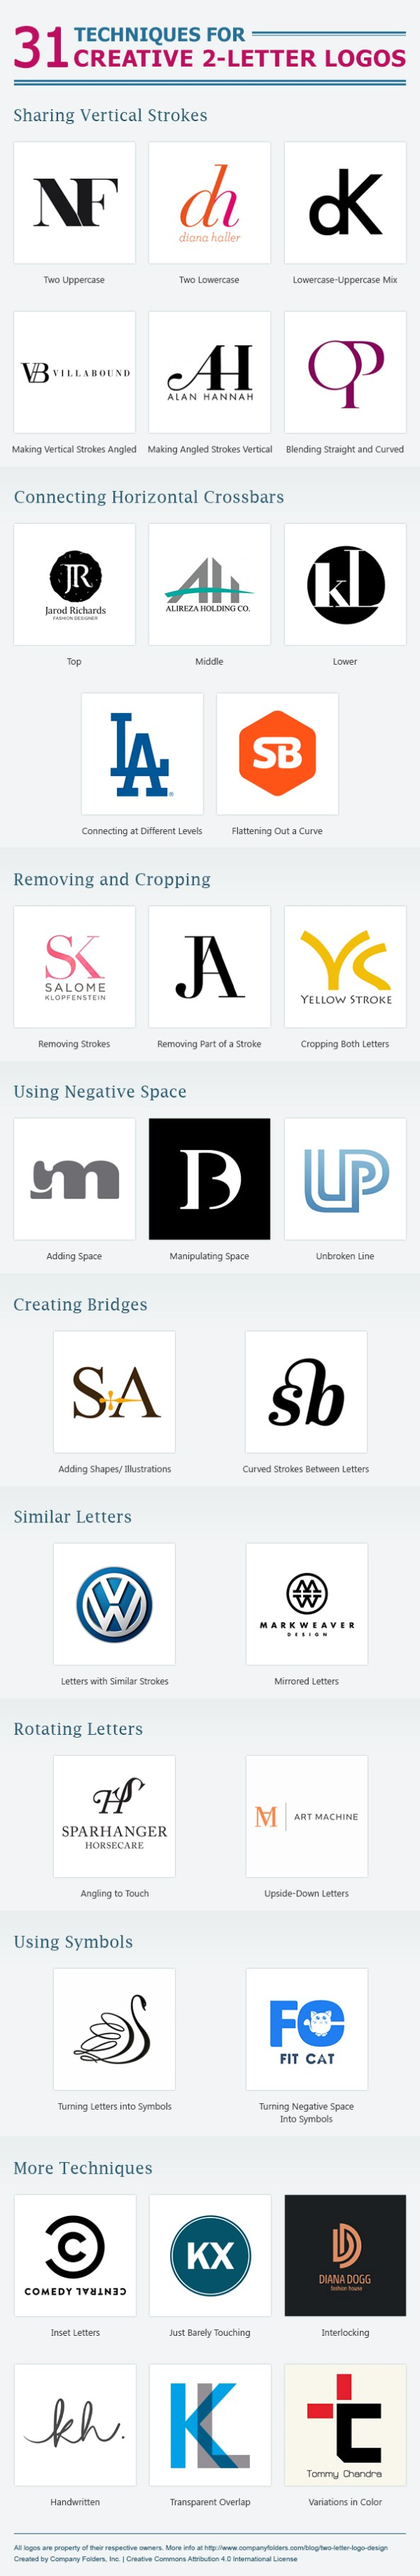 Techniques for Designing Letter Logos